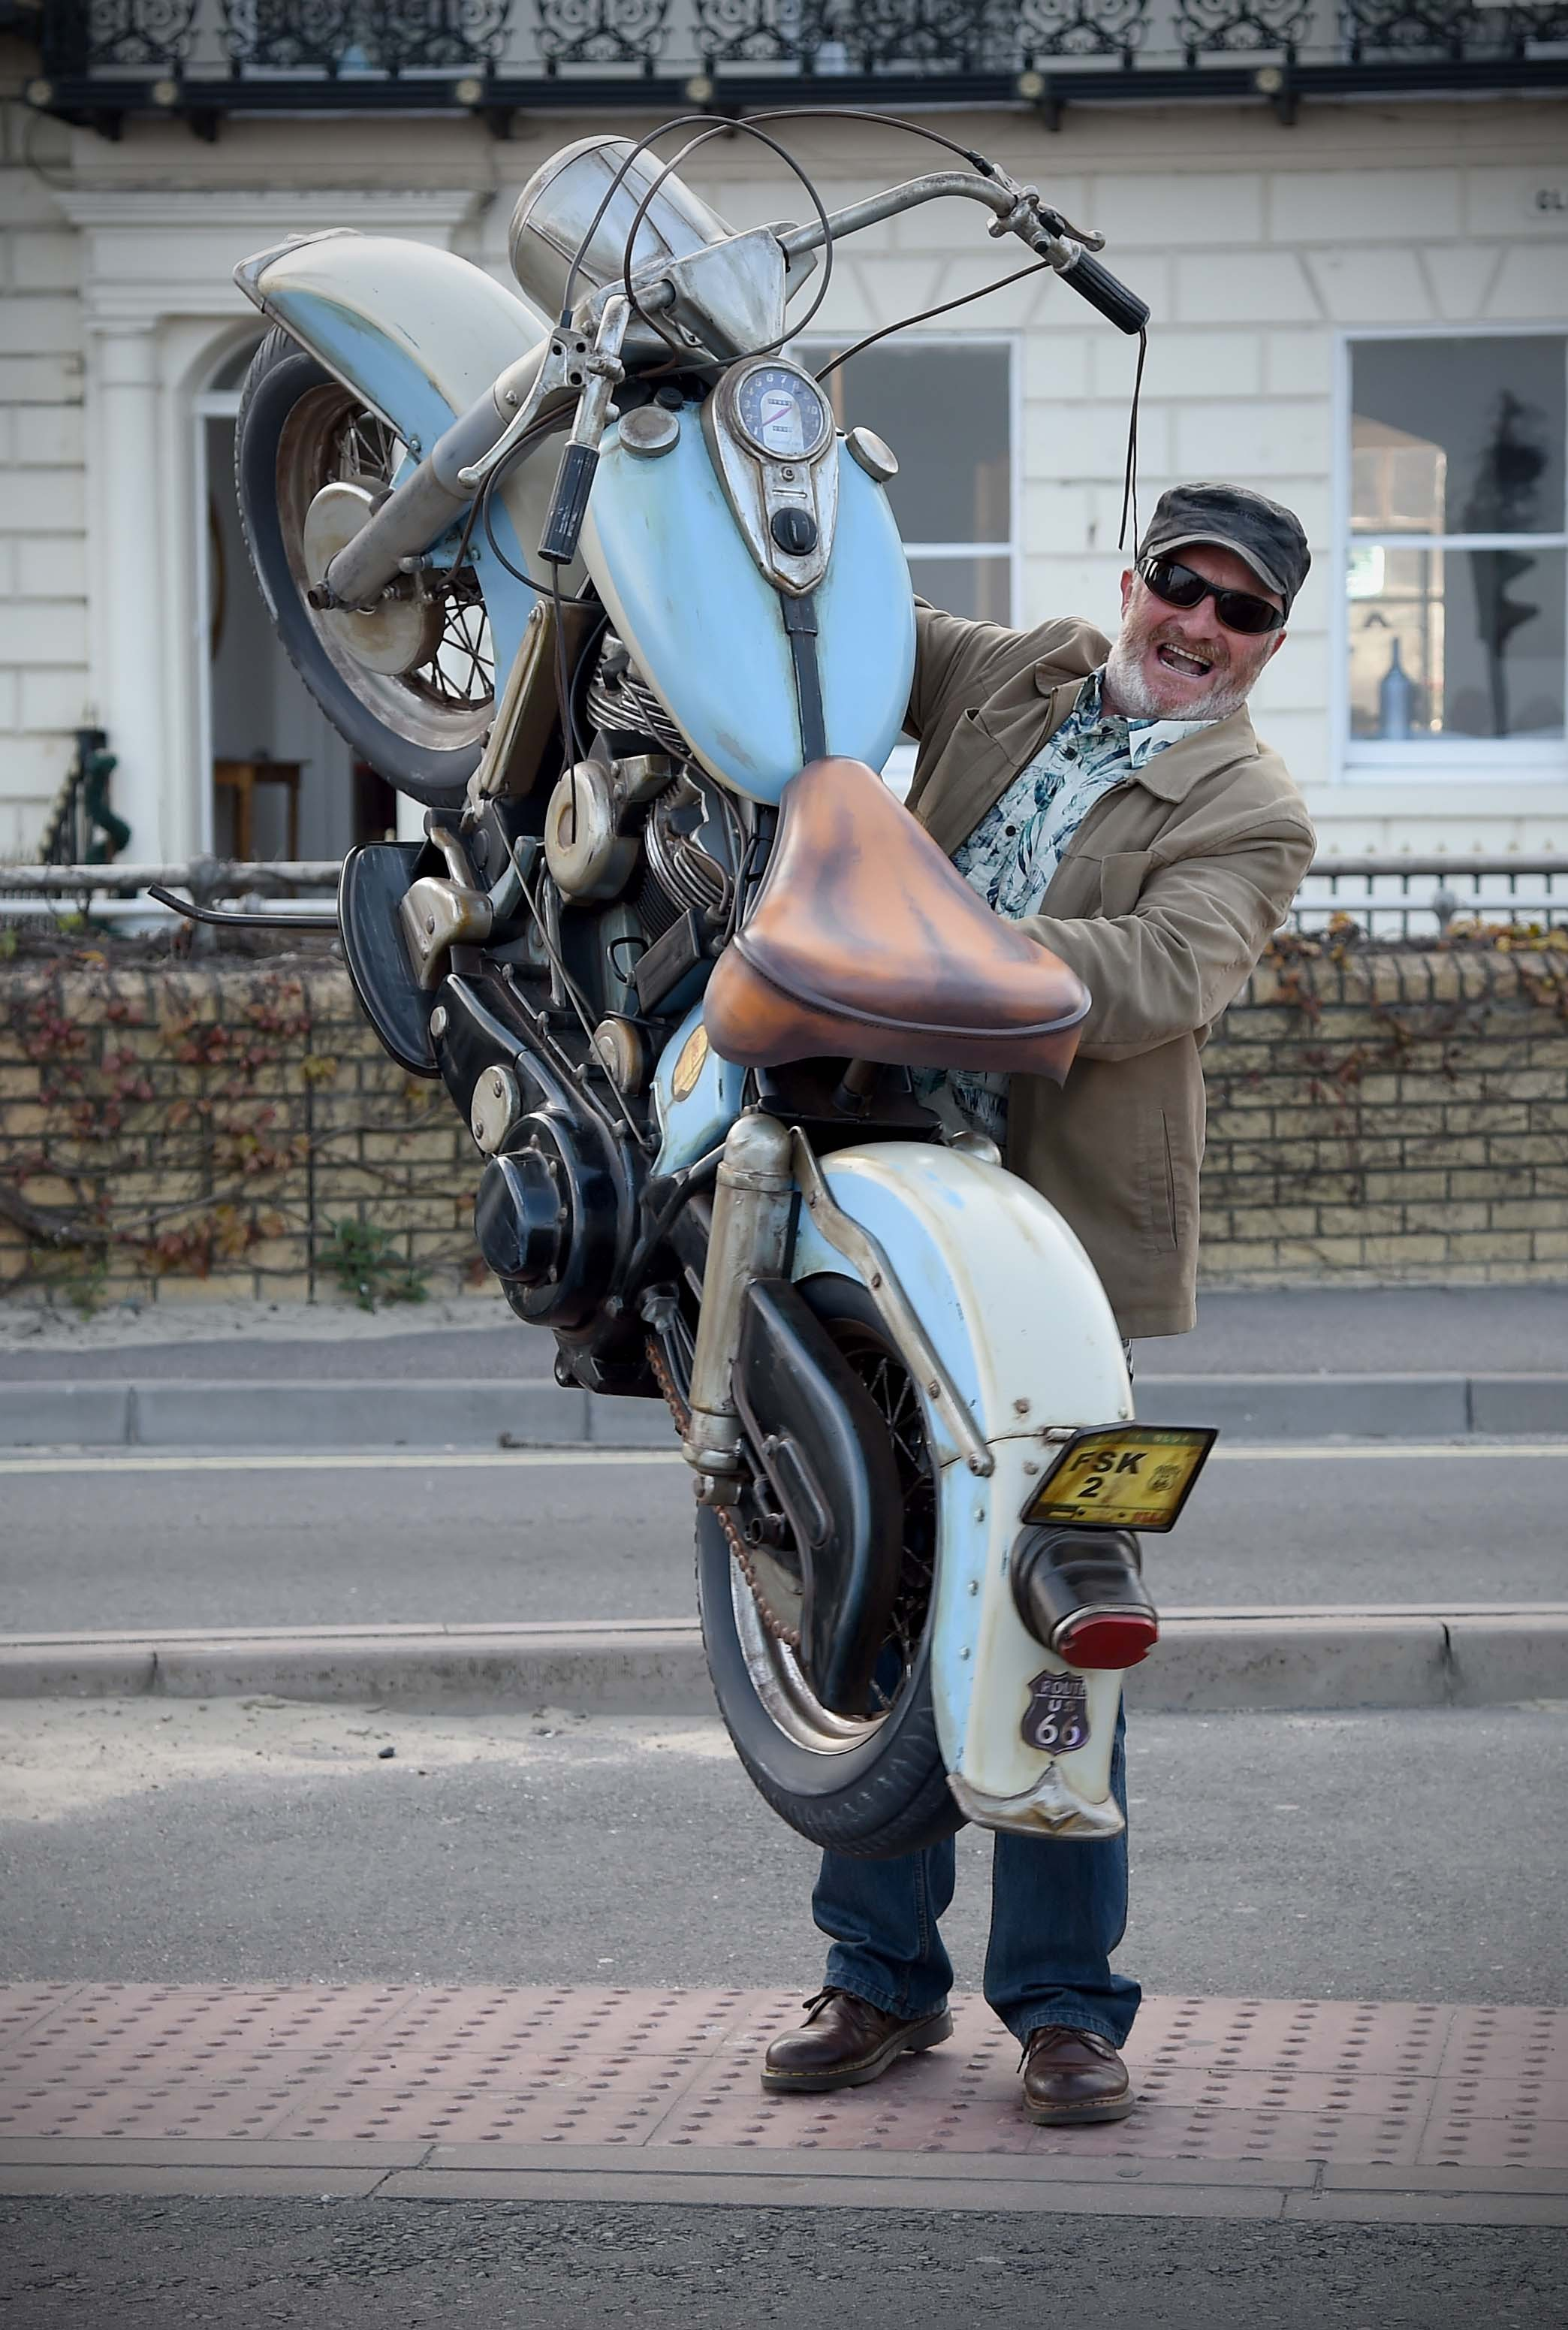 Motorcycles Makes And Models Model Making Enthusiast Shows